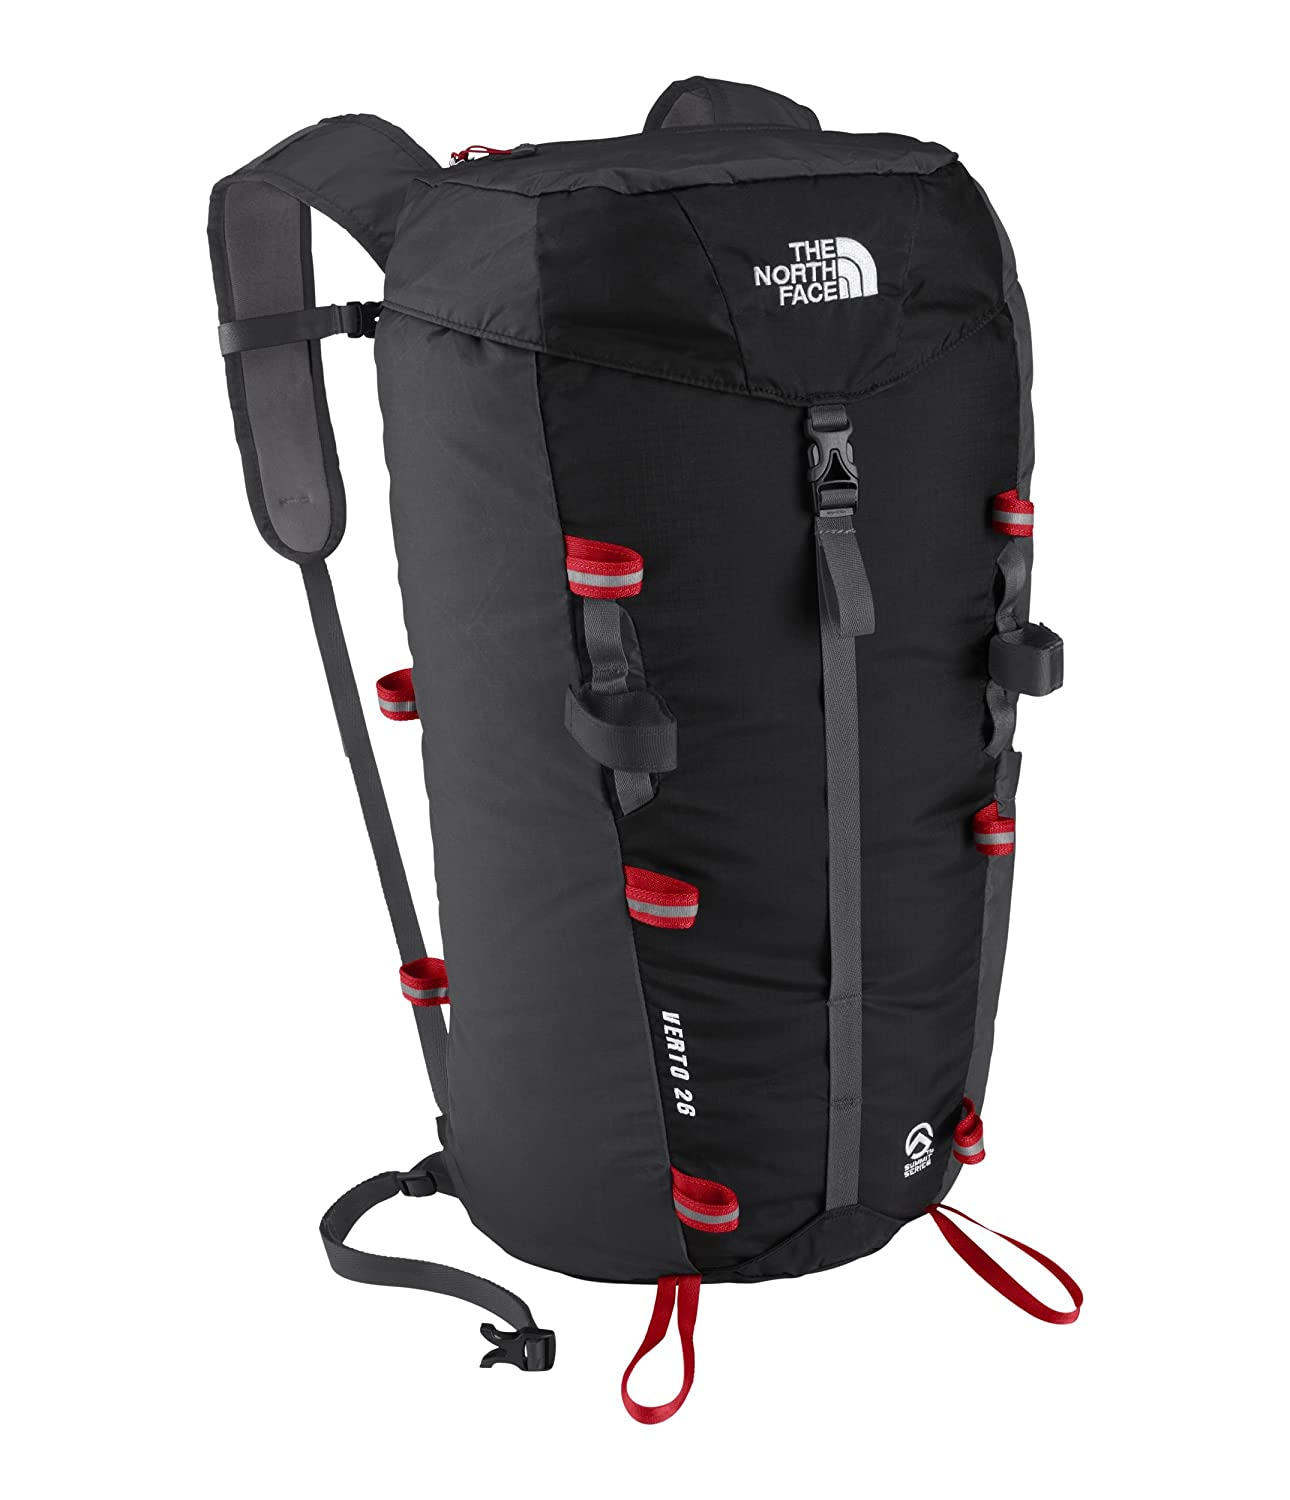 425650424 THE NORTH FACE Verto 26 Pack TNF Black/Centennial Red 26L: Amazon.co ...